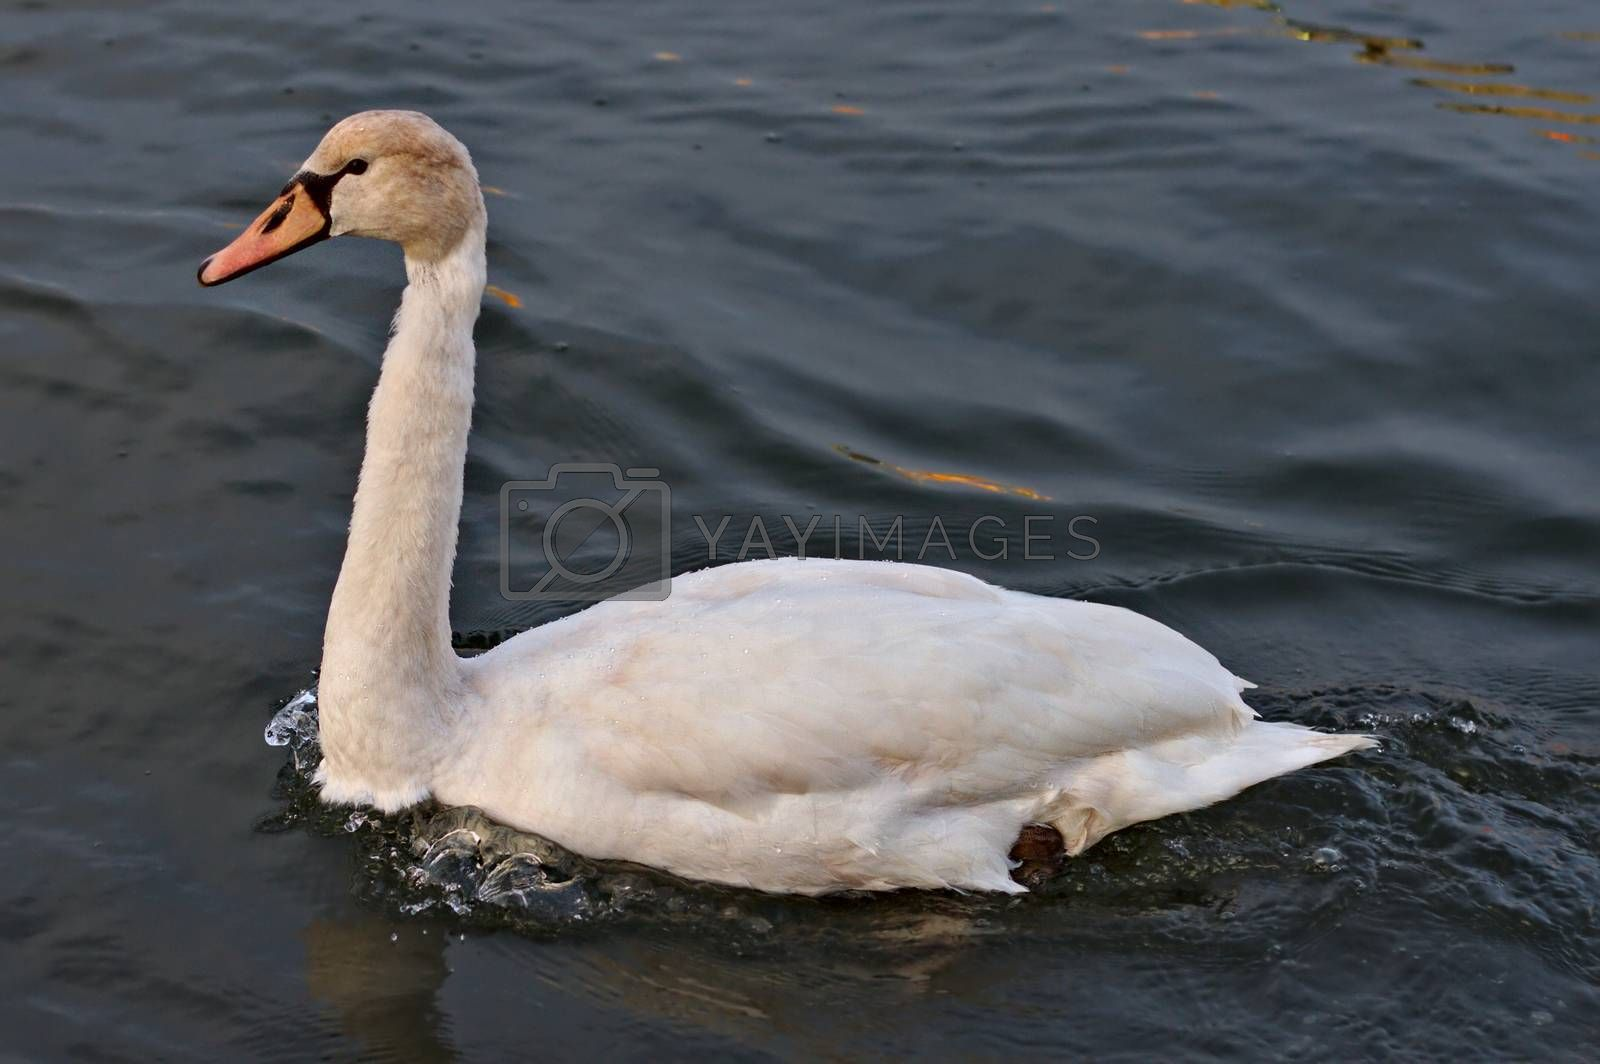 Female mute swan calmly swimming on water. Close photo from the side.